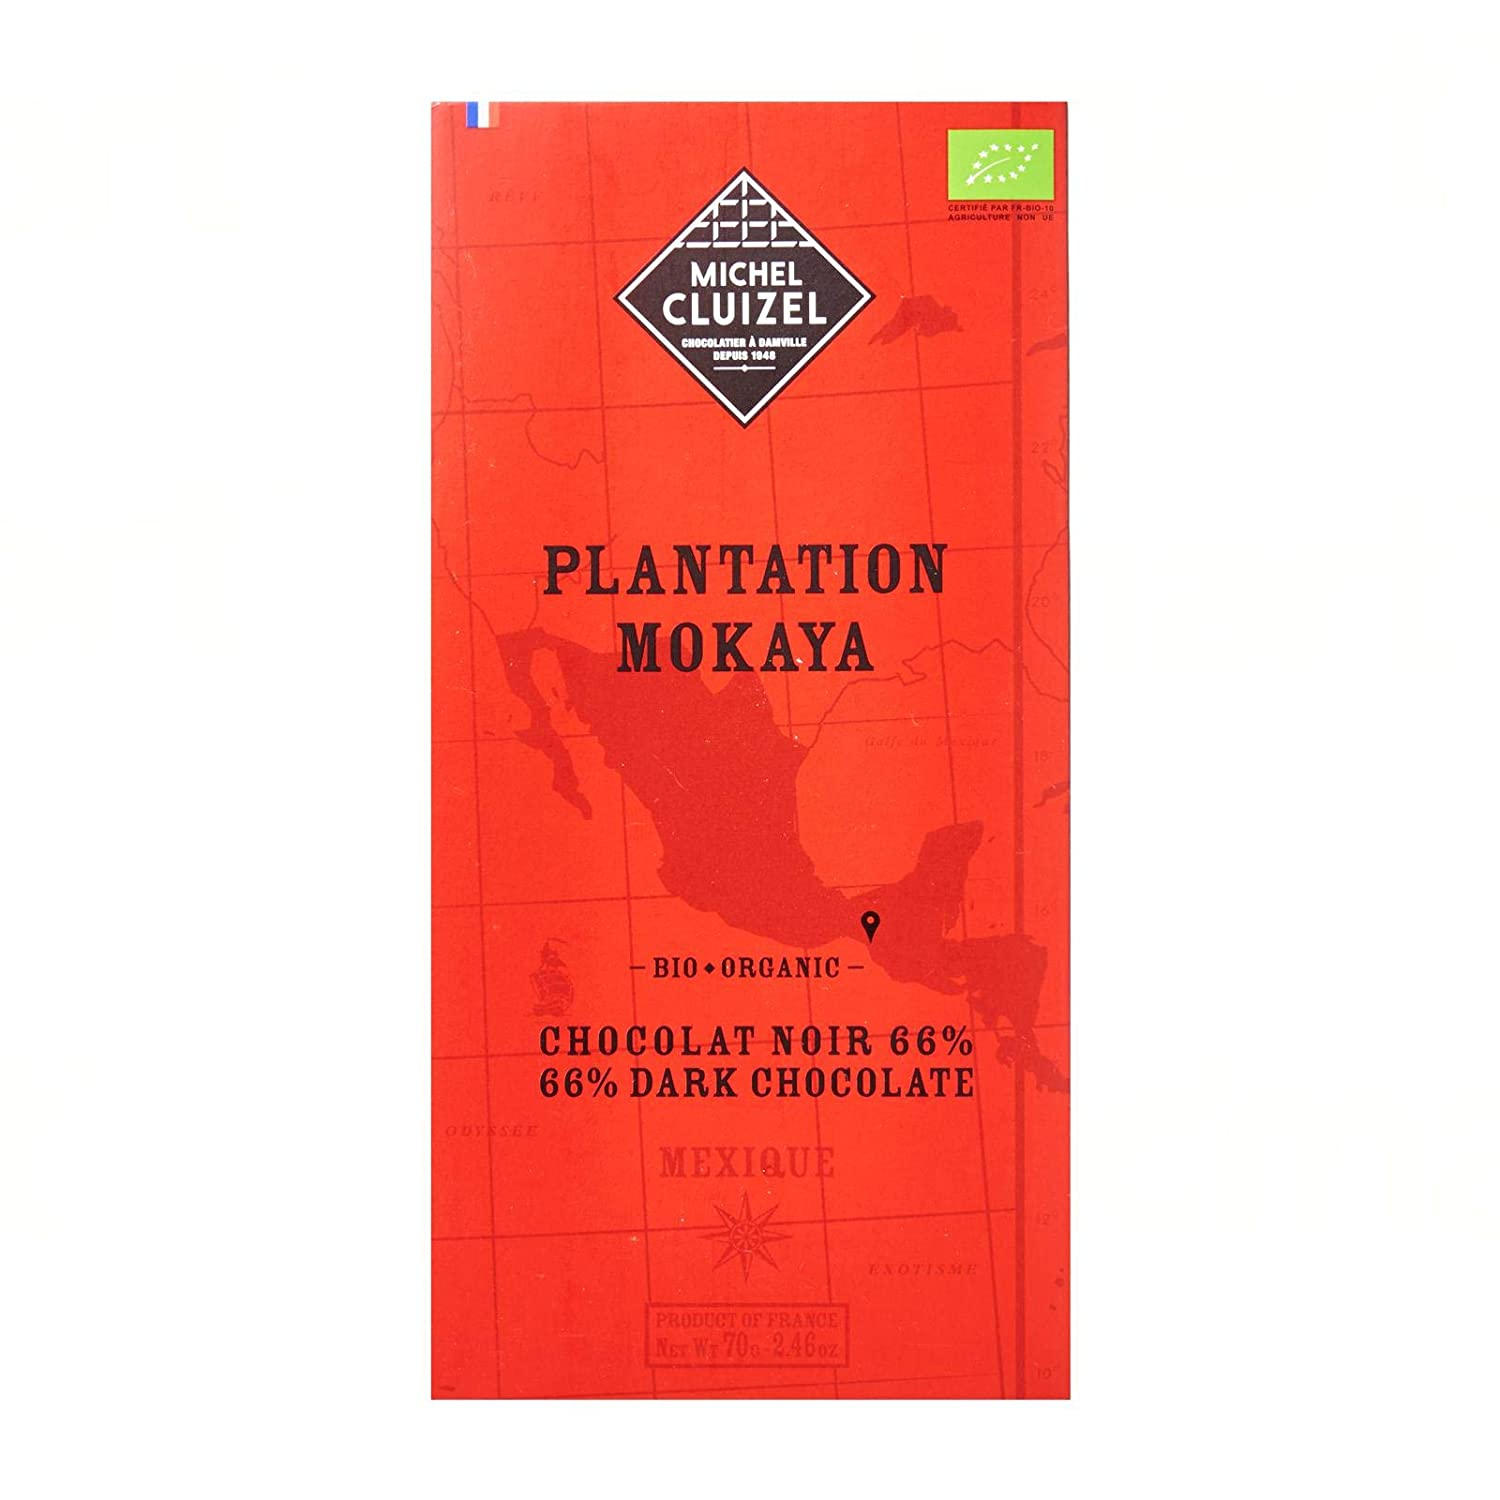 Michel Cluizel Chocolate Bar 70g - Plantation Mokaya 66% Dark Chocolate